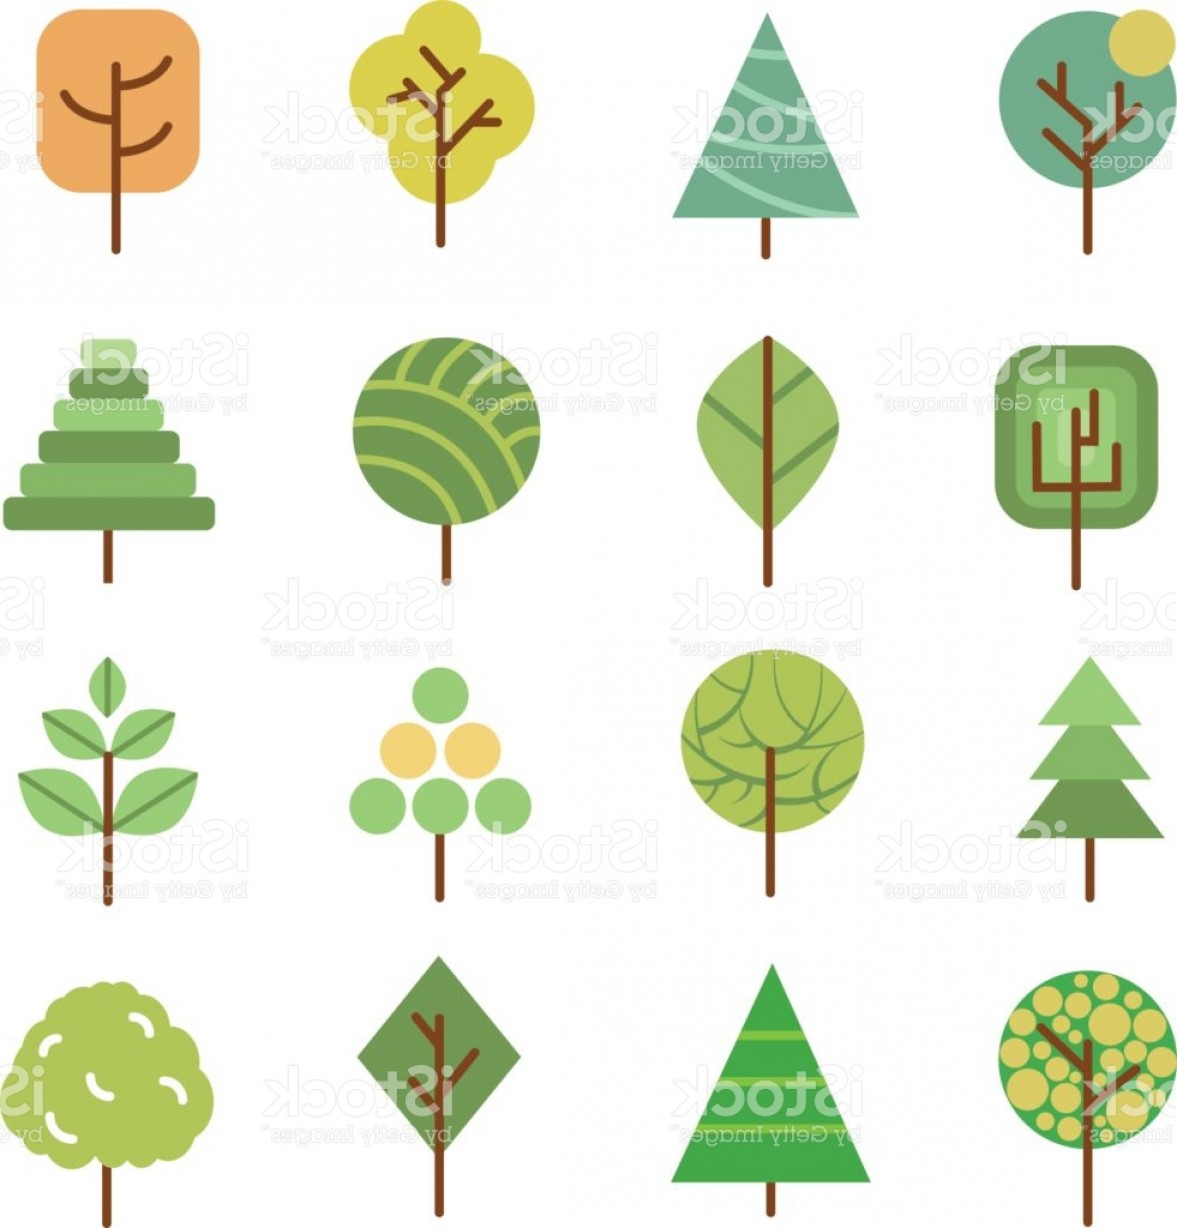 Flat Vector Art And Abstract Forest: Linear Flat Vector Trees Nature Forest Design Icons With Geometric Shapes Gm